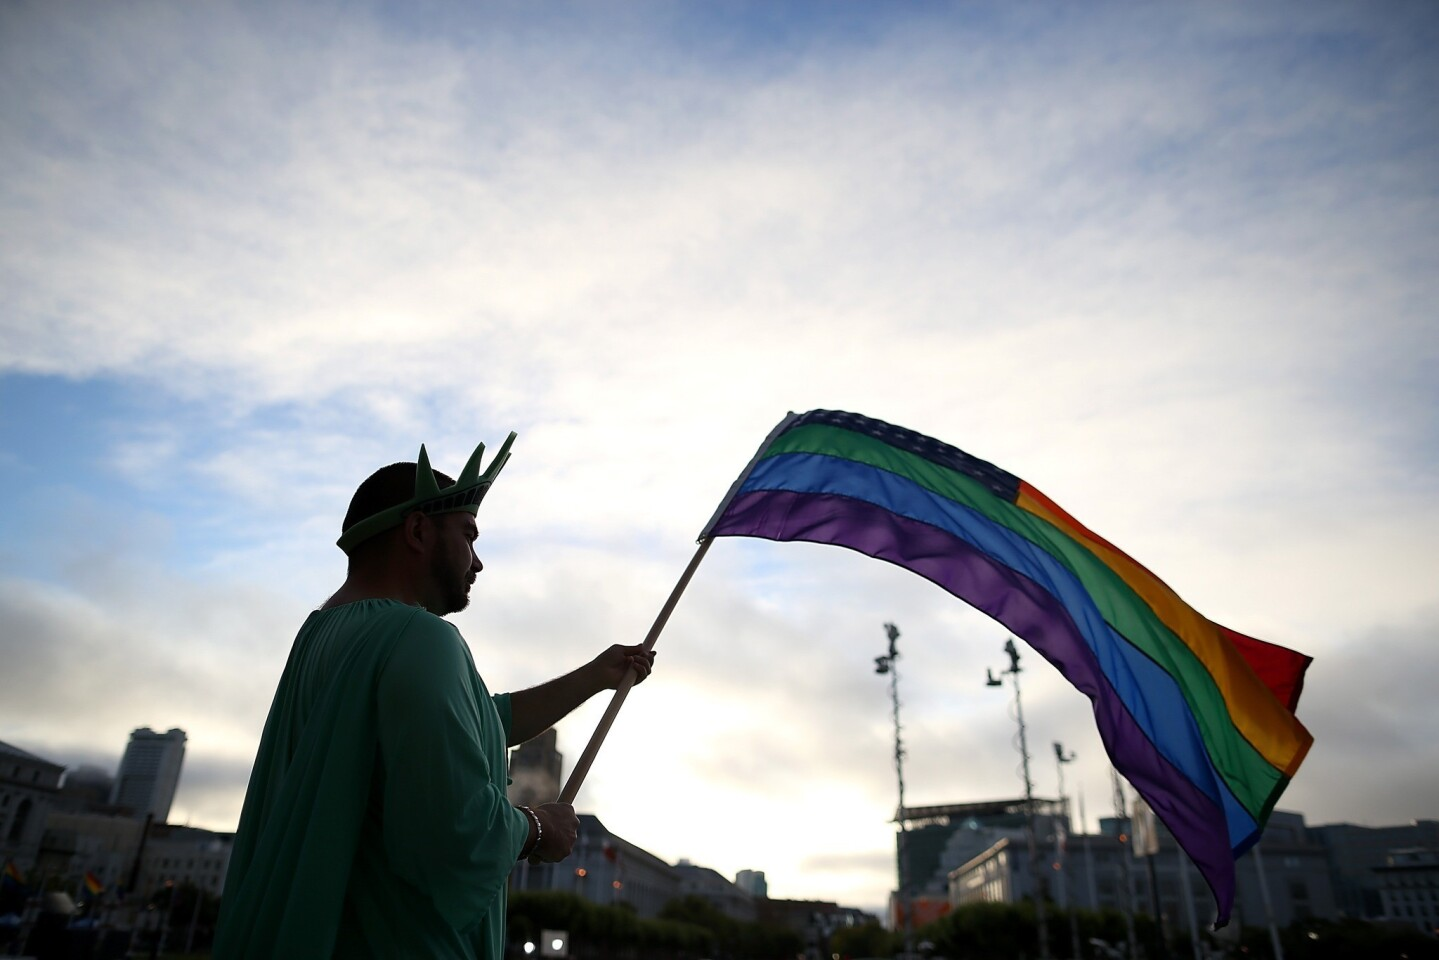 The Supreme Court strikes down key parts of the federal Defense of Marriage Act and opens the way for gay marriage in California. Celebrities weigh in on Twitter. Full coverage on Prop. 8 and DOMA